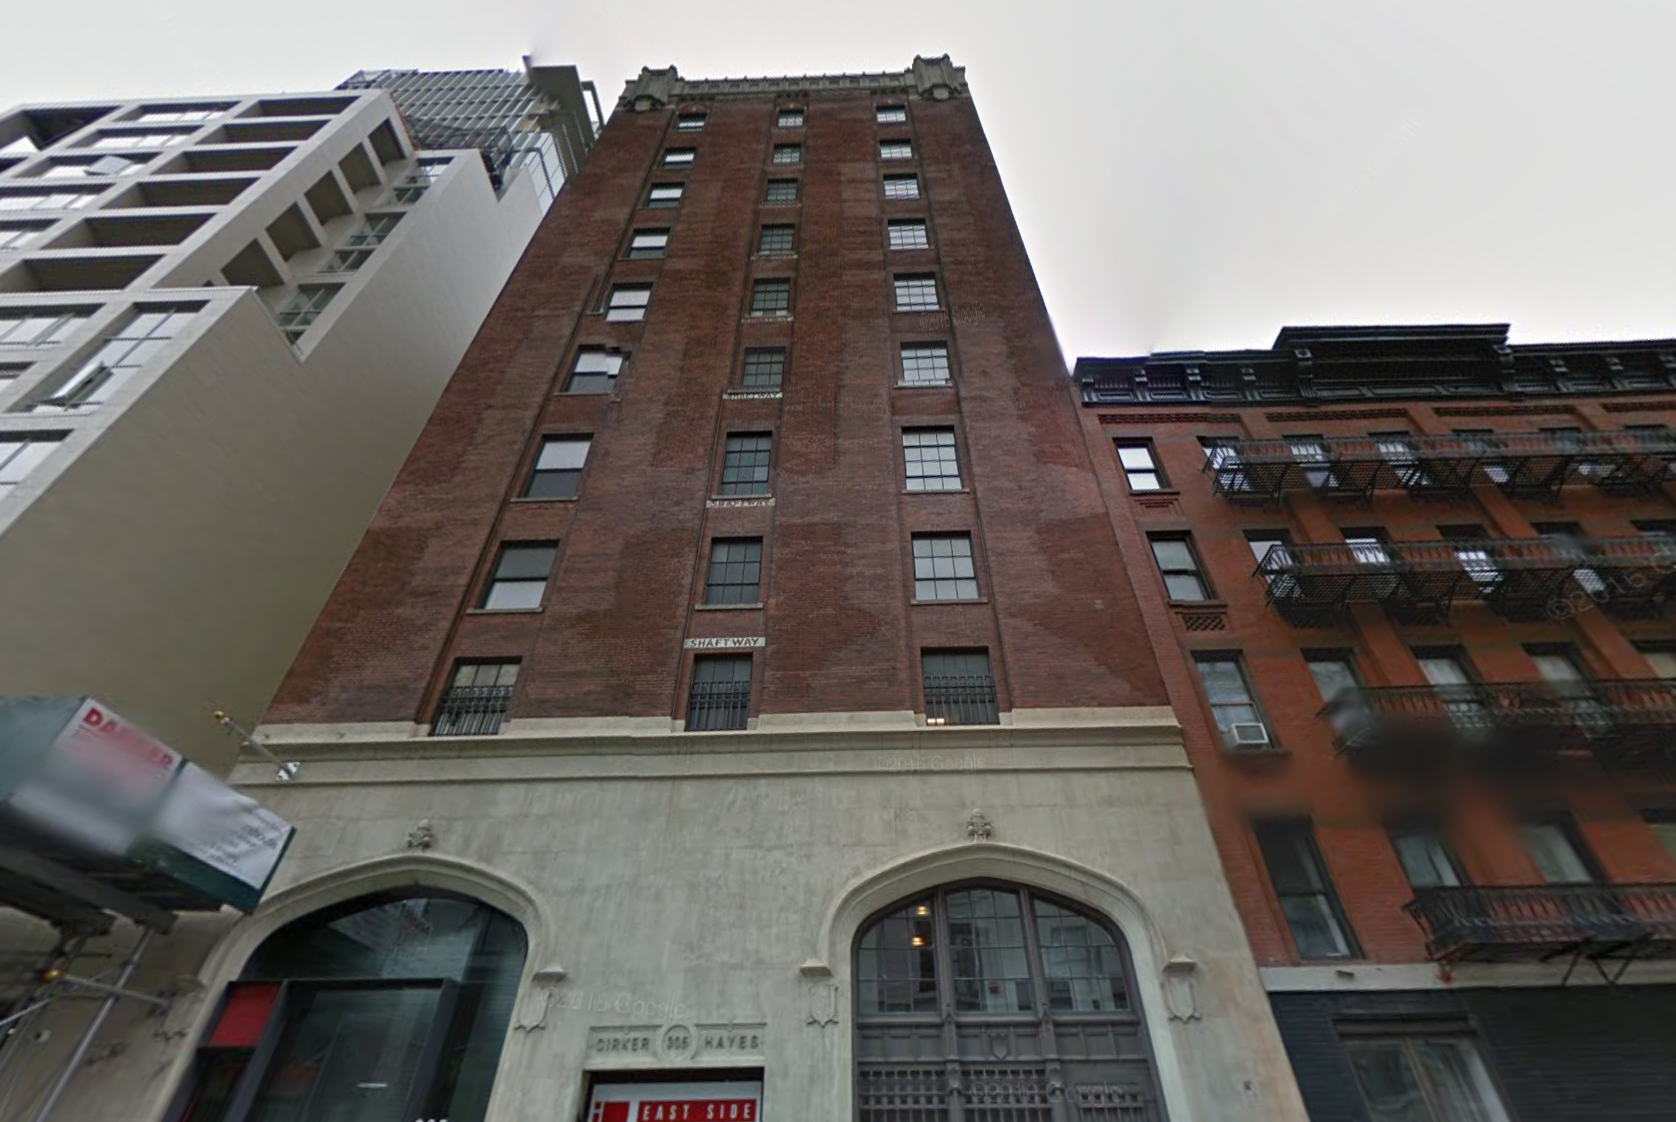 305 East 61st Street in May 2016, image via Google Maps